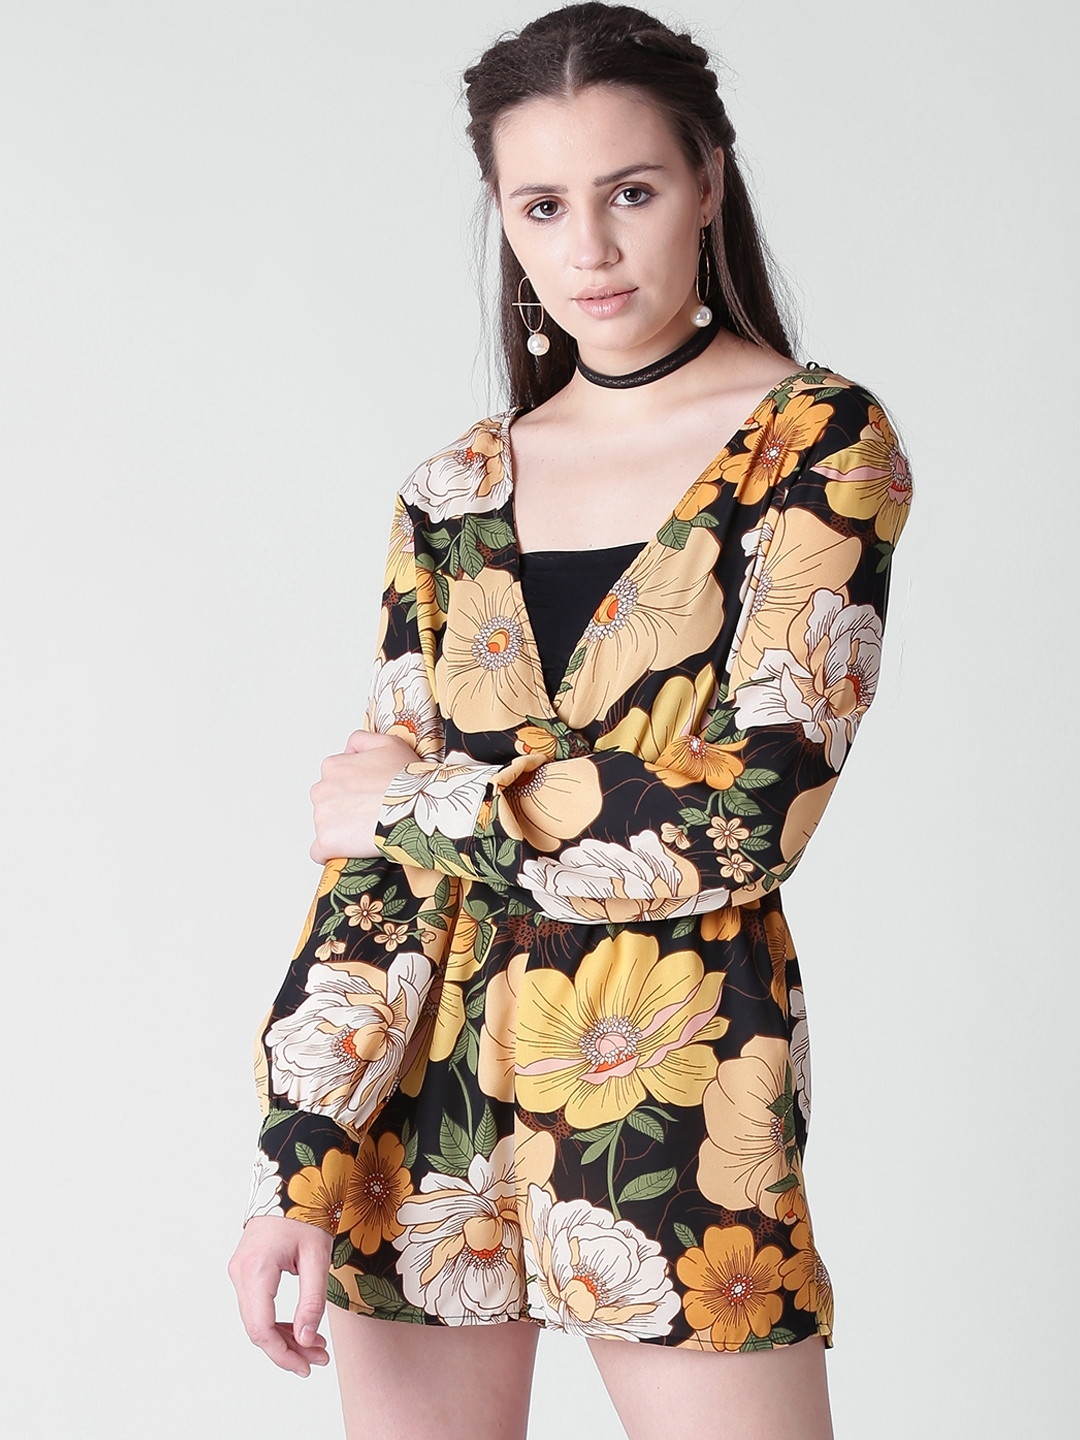 56e5f54924 Buy FOREVER 21 Black   Mustard Yellow Floral Print Playsuit ...